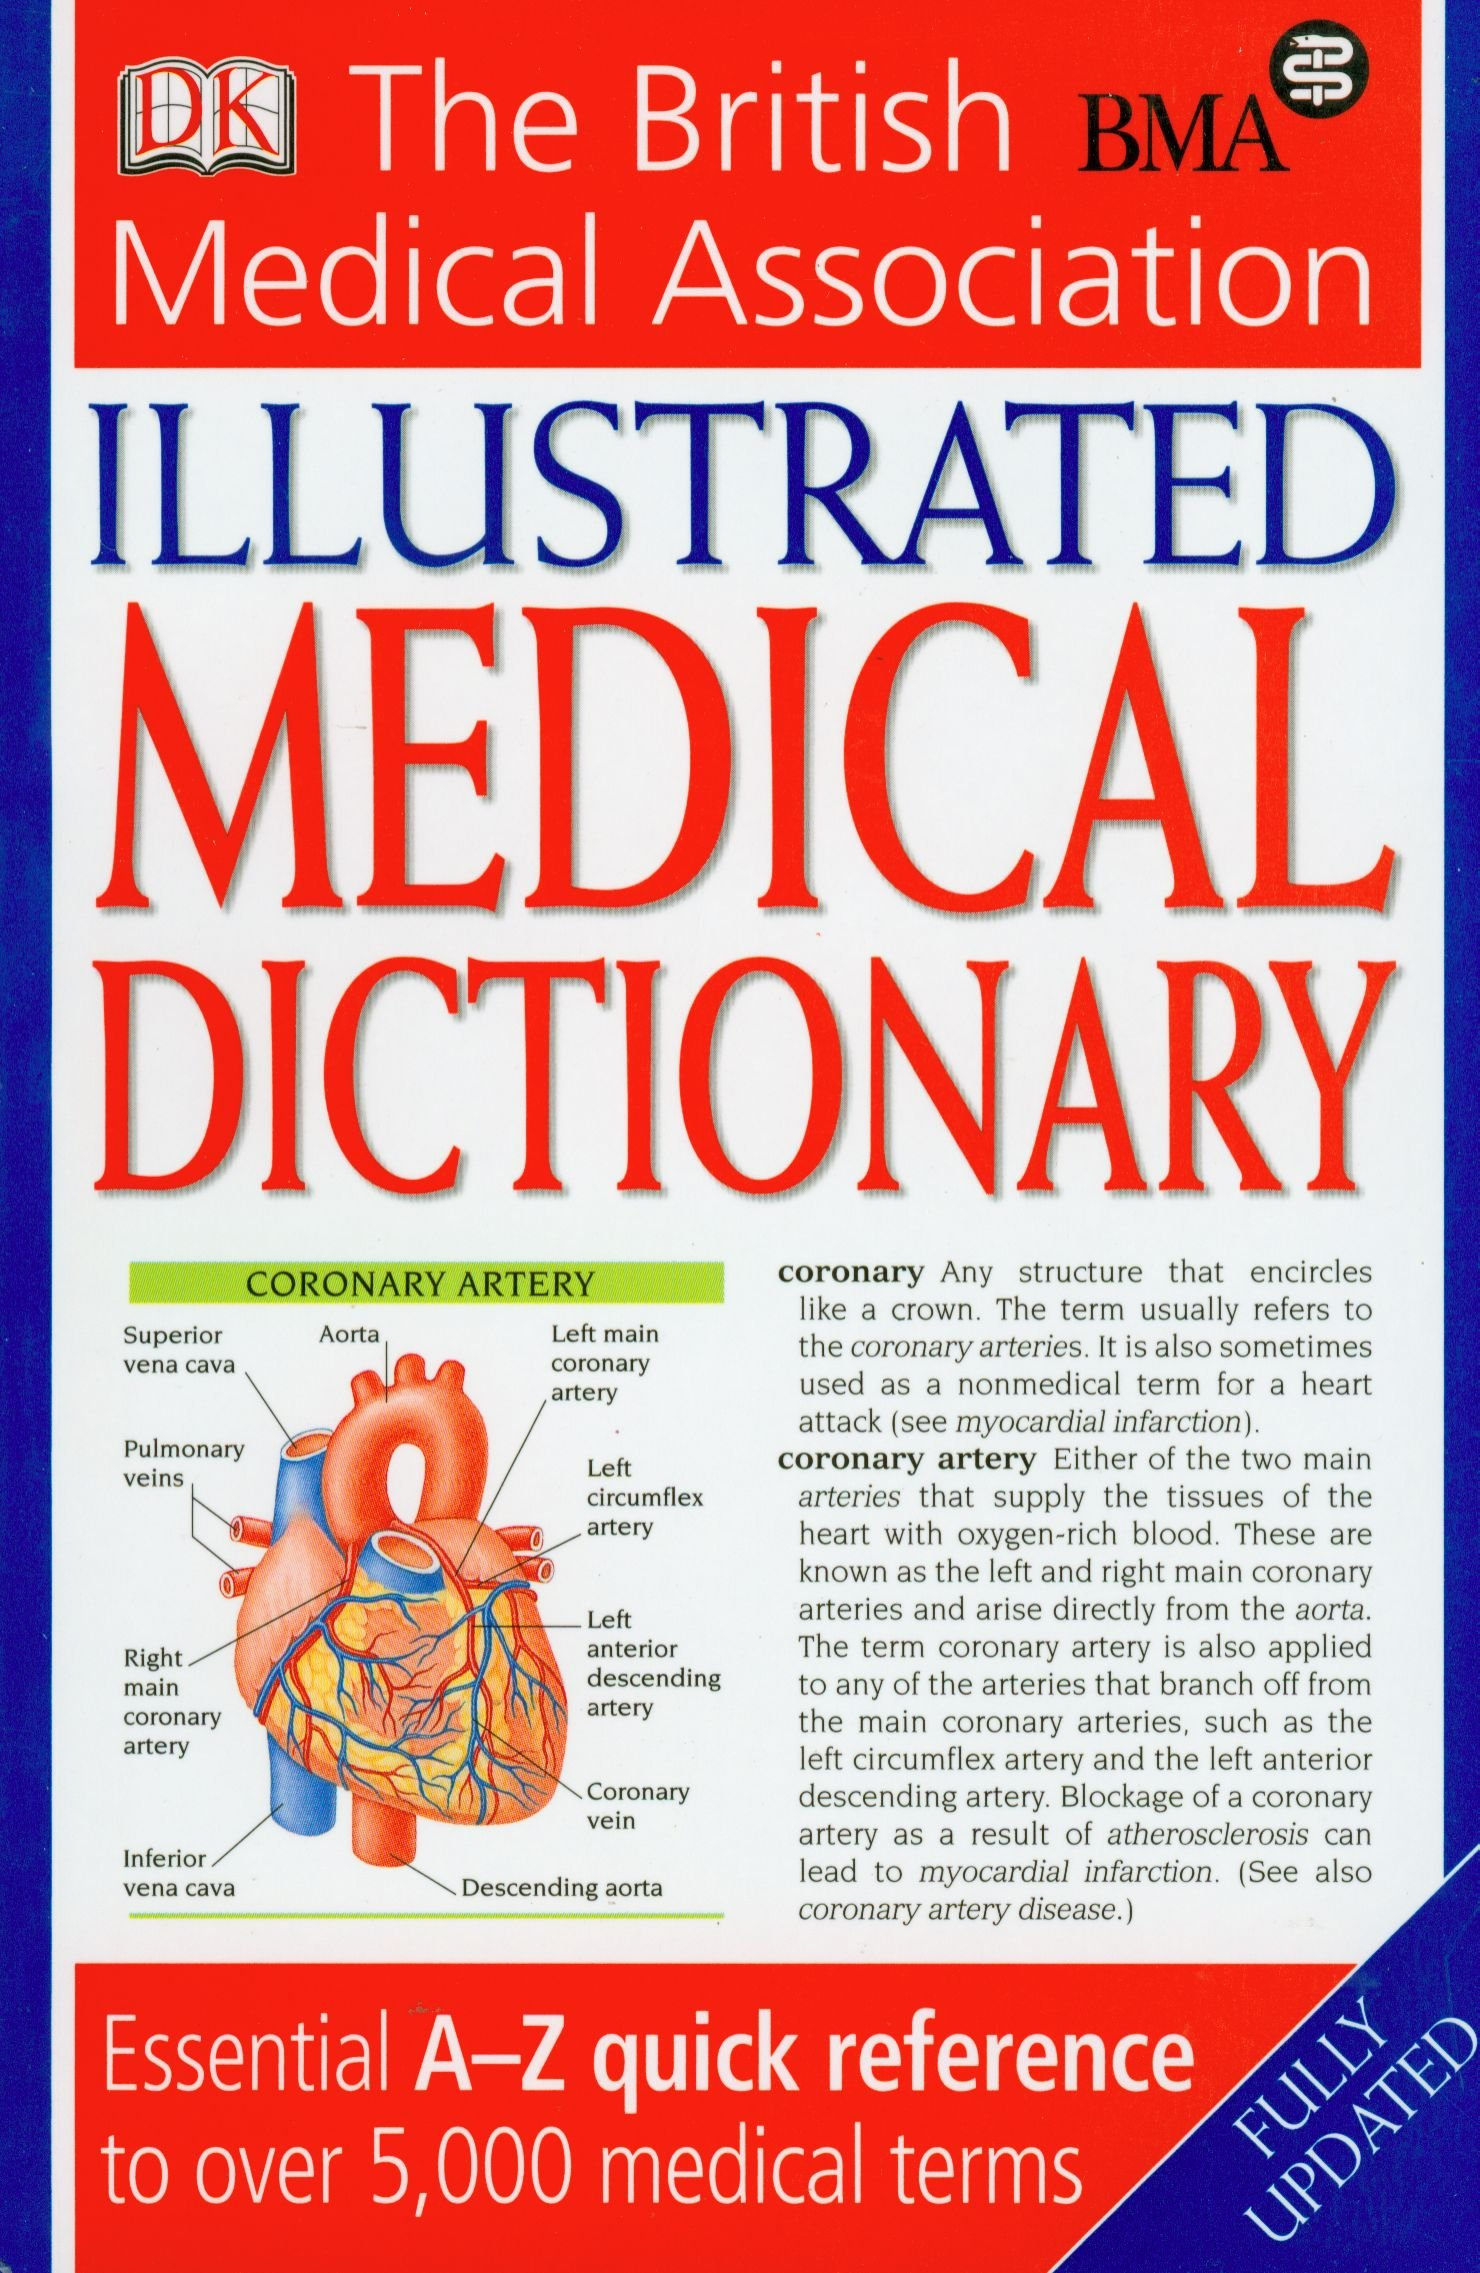 Bma Illustrated Medical Dictionary 2nd Edition Essential A Z Quick